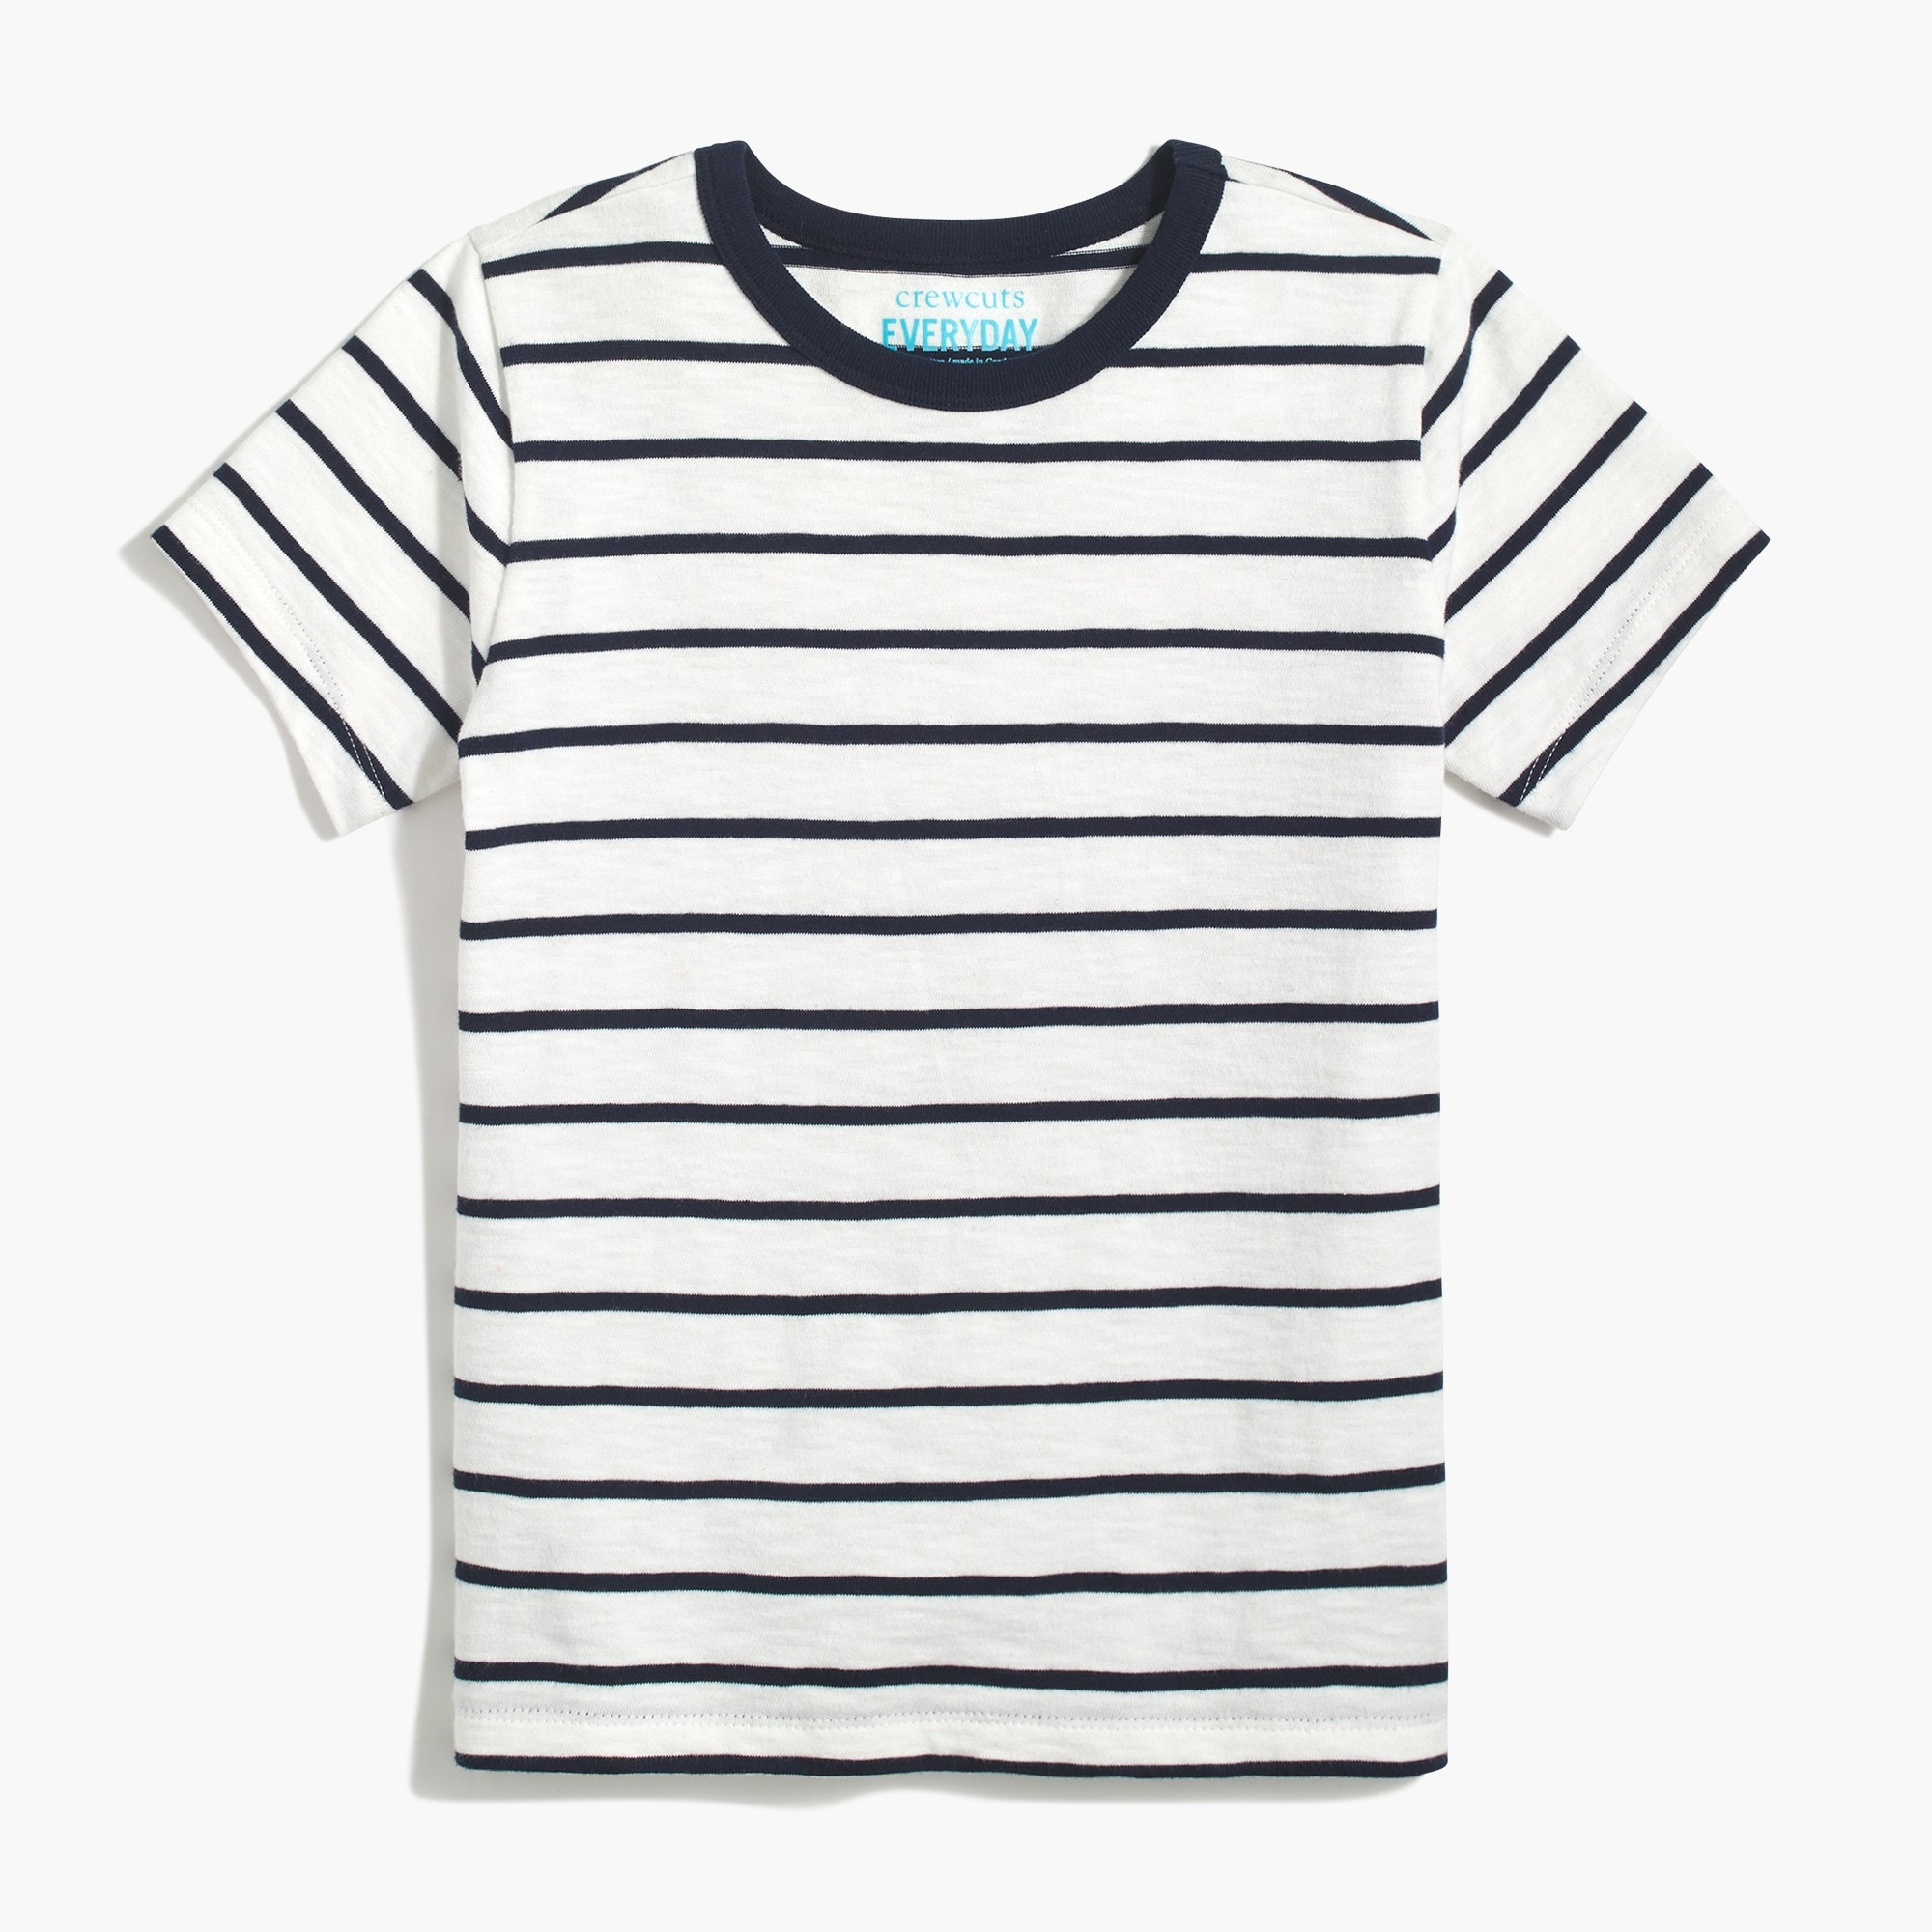 factory boys Boys' short-sleeve t-shirt in classic stripe